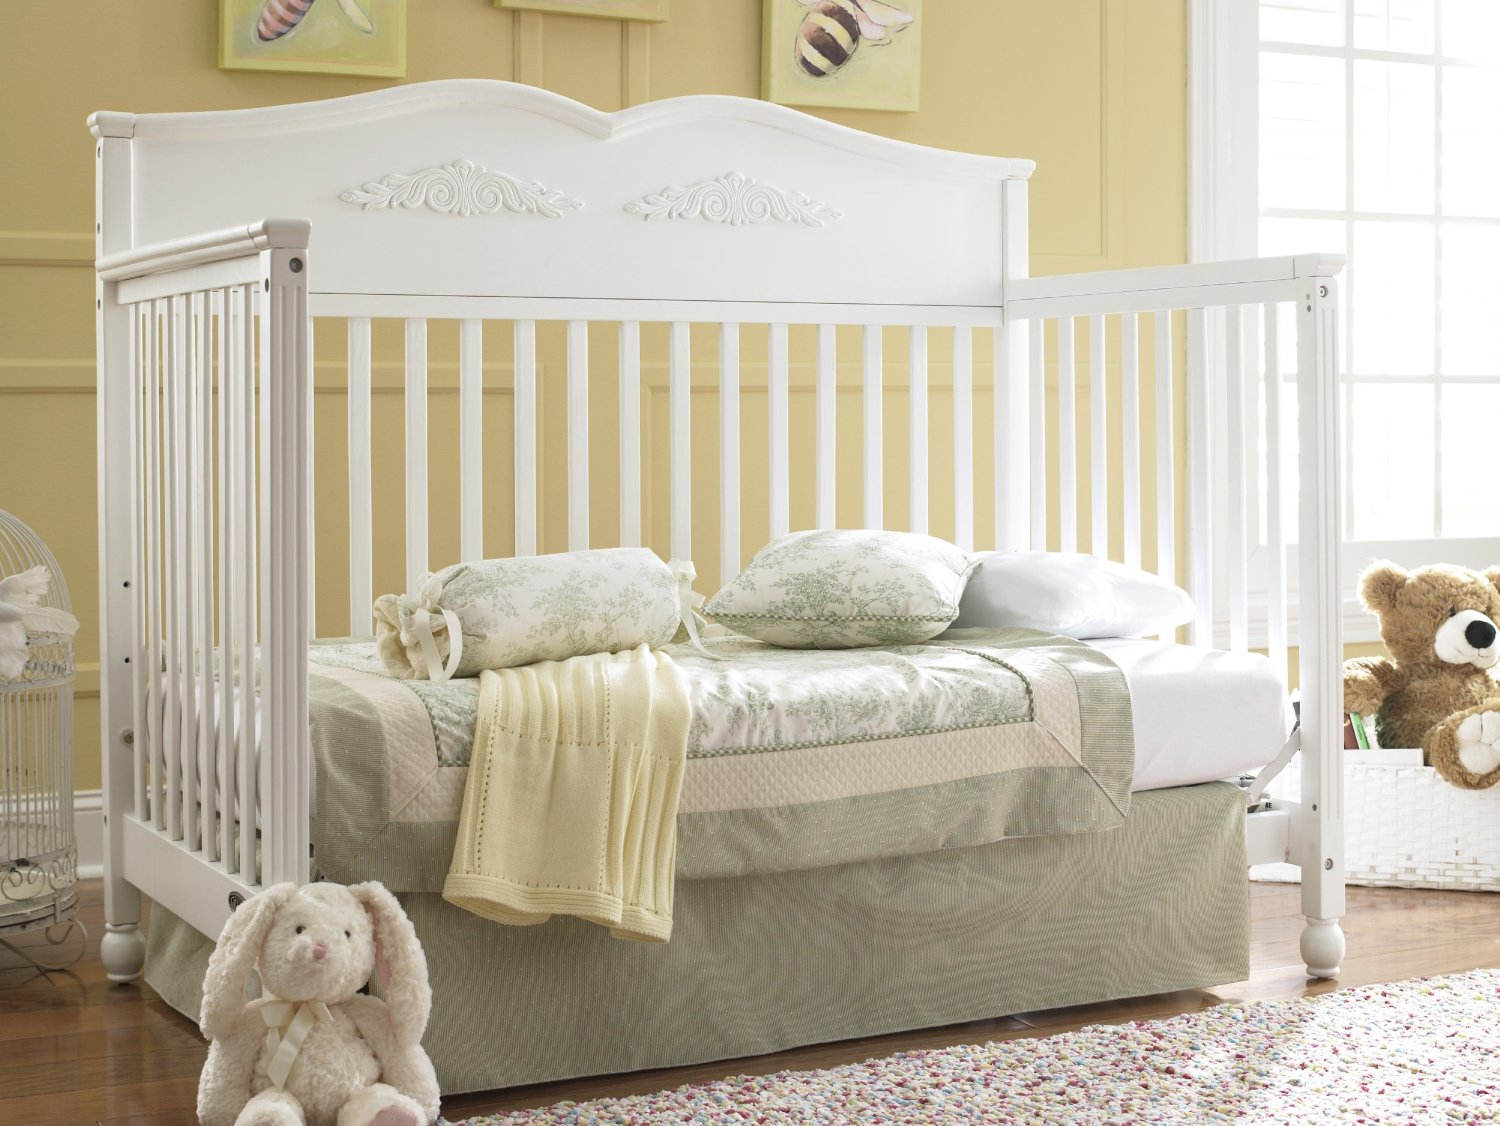 Nursery furniture sets baby room theme for Baby furniture